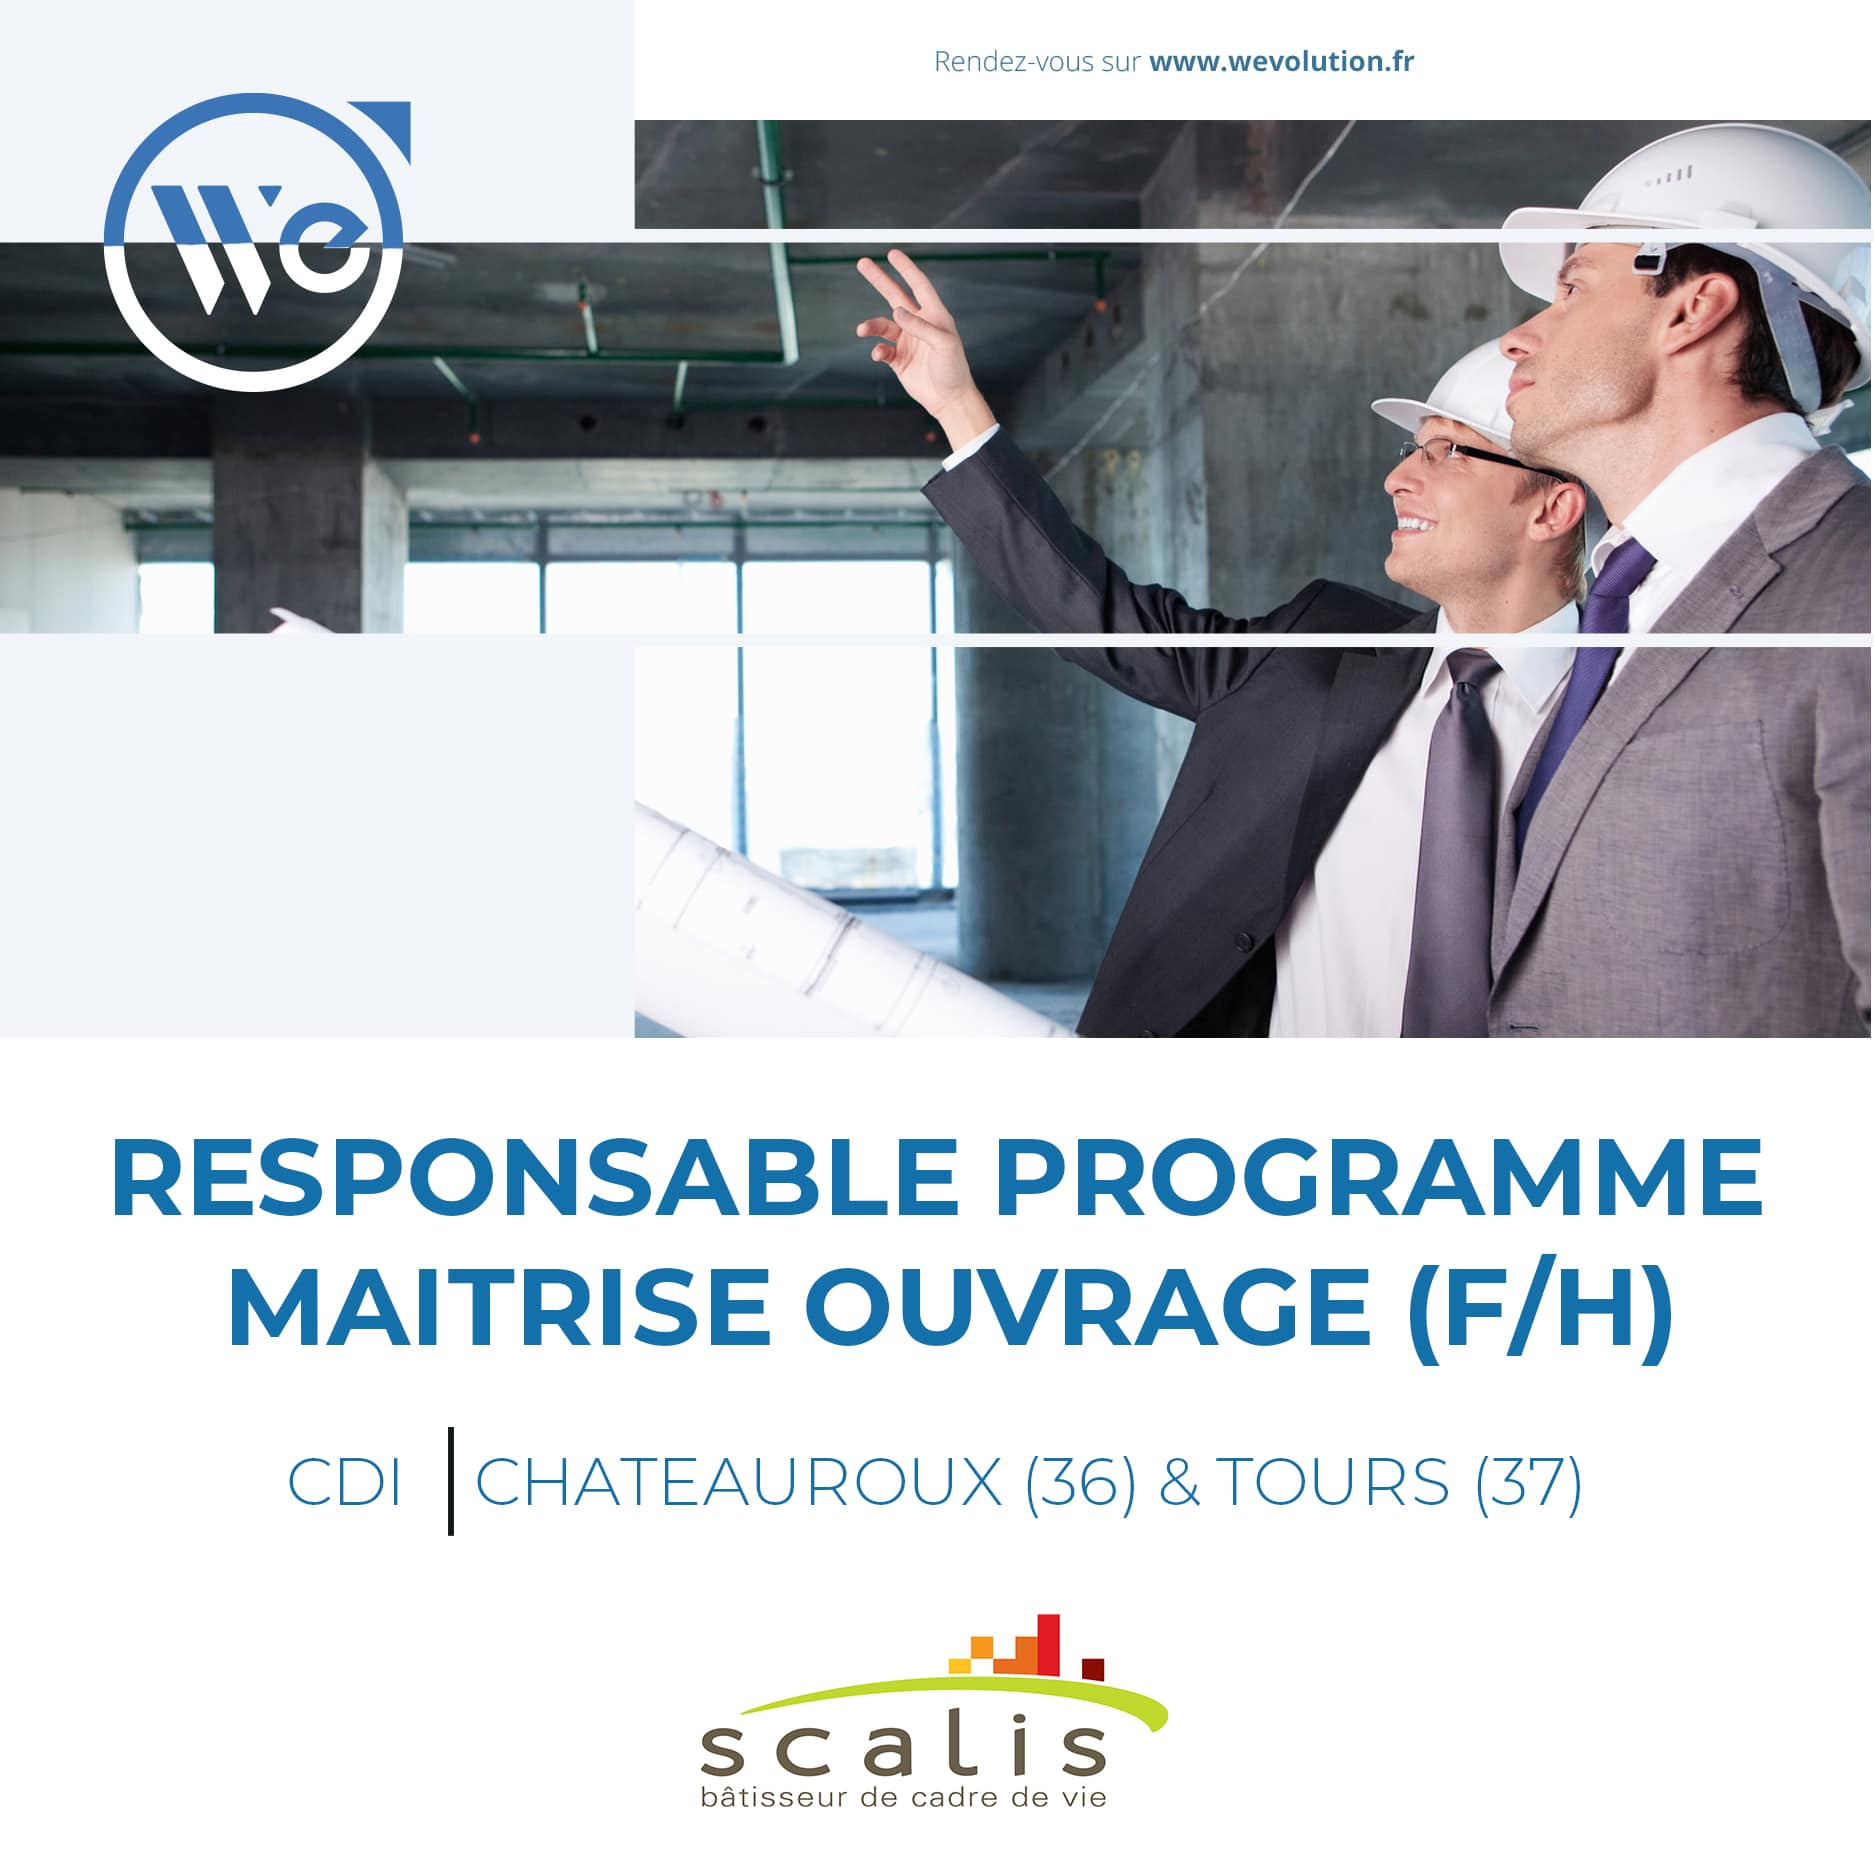 RESPONSABLE PROGRAMME MAITRISE OUVRAGE – scalis